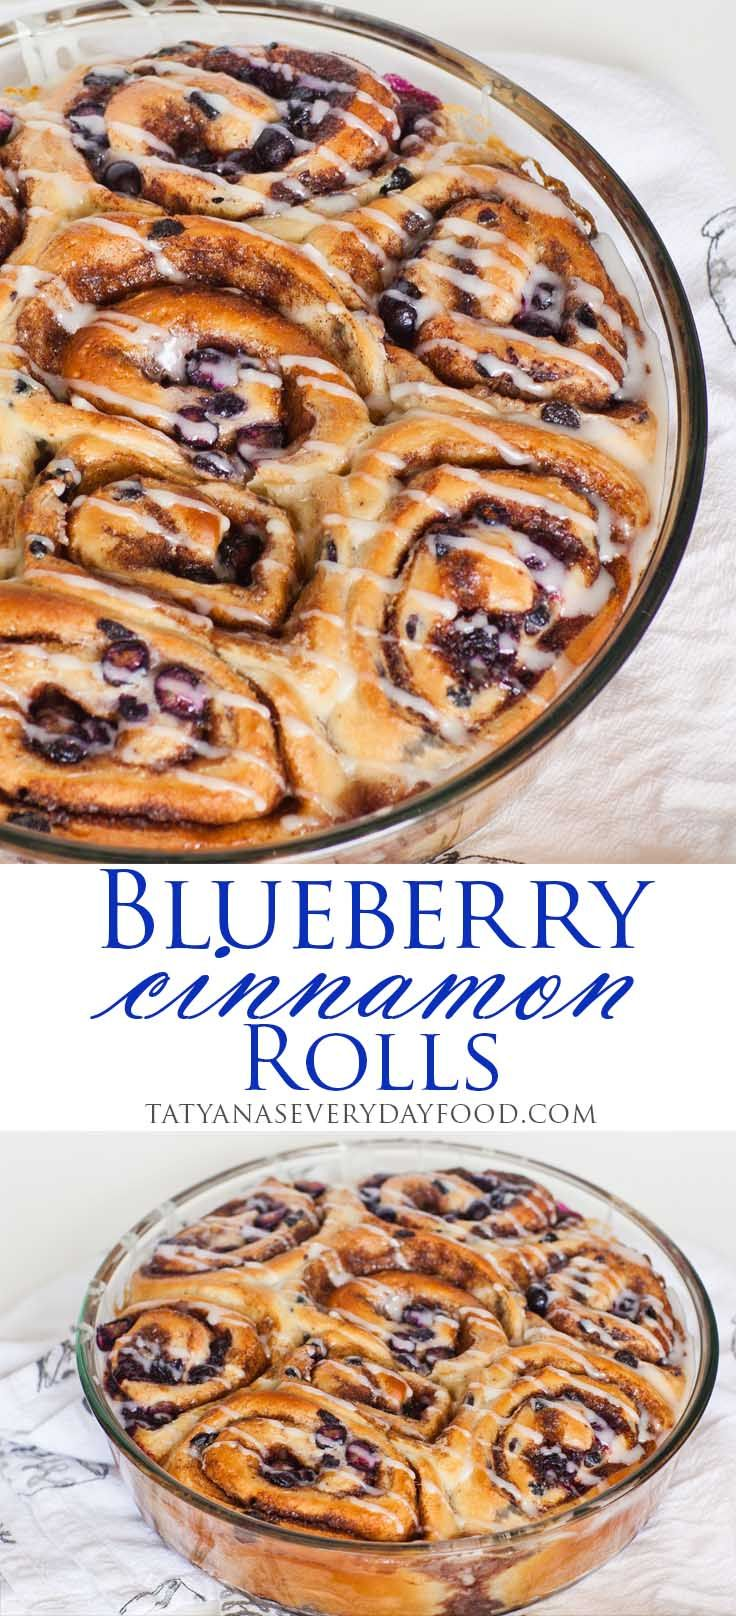 If you love cinnamon rolls and blueberries, you will love these double blueberry cinnamon rolls! I'm using my hit cinnamon roll recipe and adding dried blueberries to the dough and adding more fresh blueberries on inside! Finish them off with a simple sugar glaze for an extra bit of sweetness. Watch the video recipe under the […]